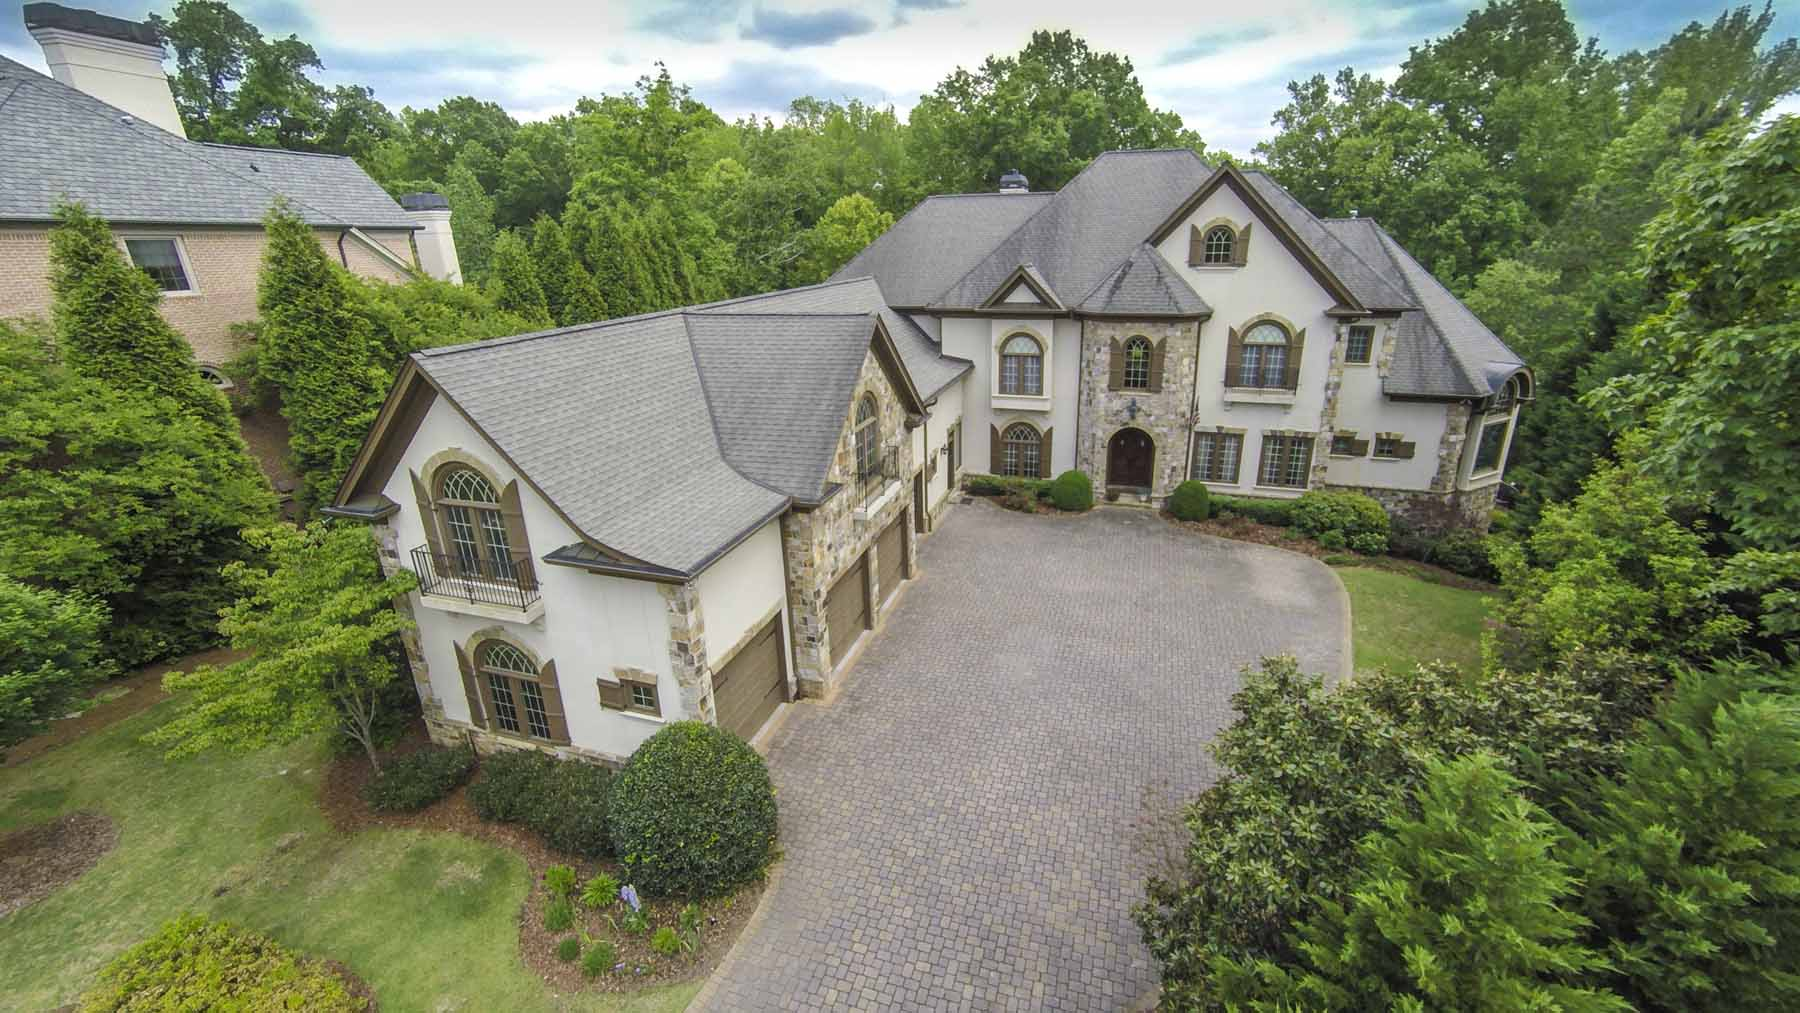 Maison unifamiliale pour l Vente à Stunning Home Meets Modern Updates on the Sparkling Chattahoochee River 500 Covington Cove Alpharetta, Georgia 30022 États-Unis